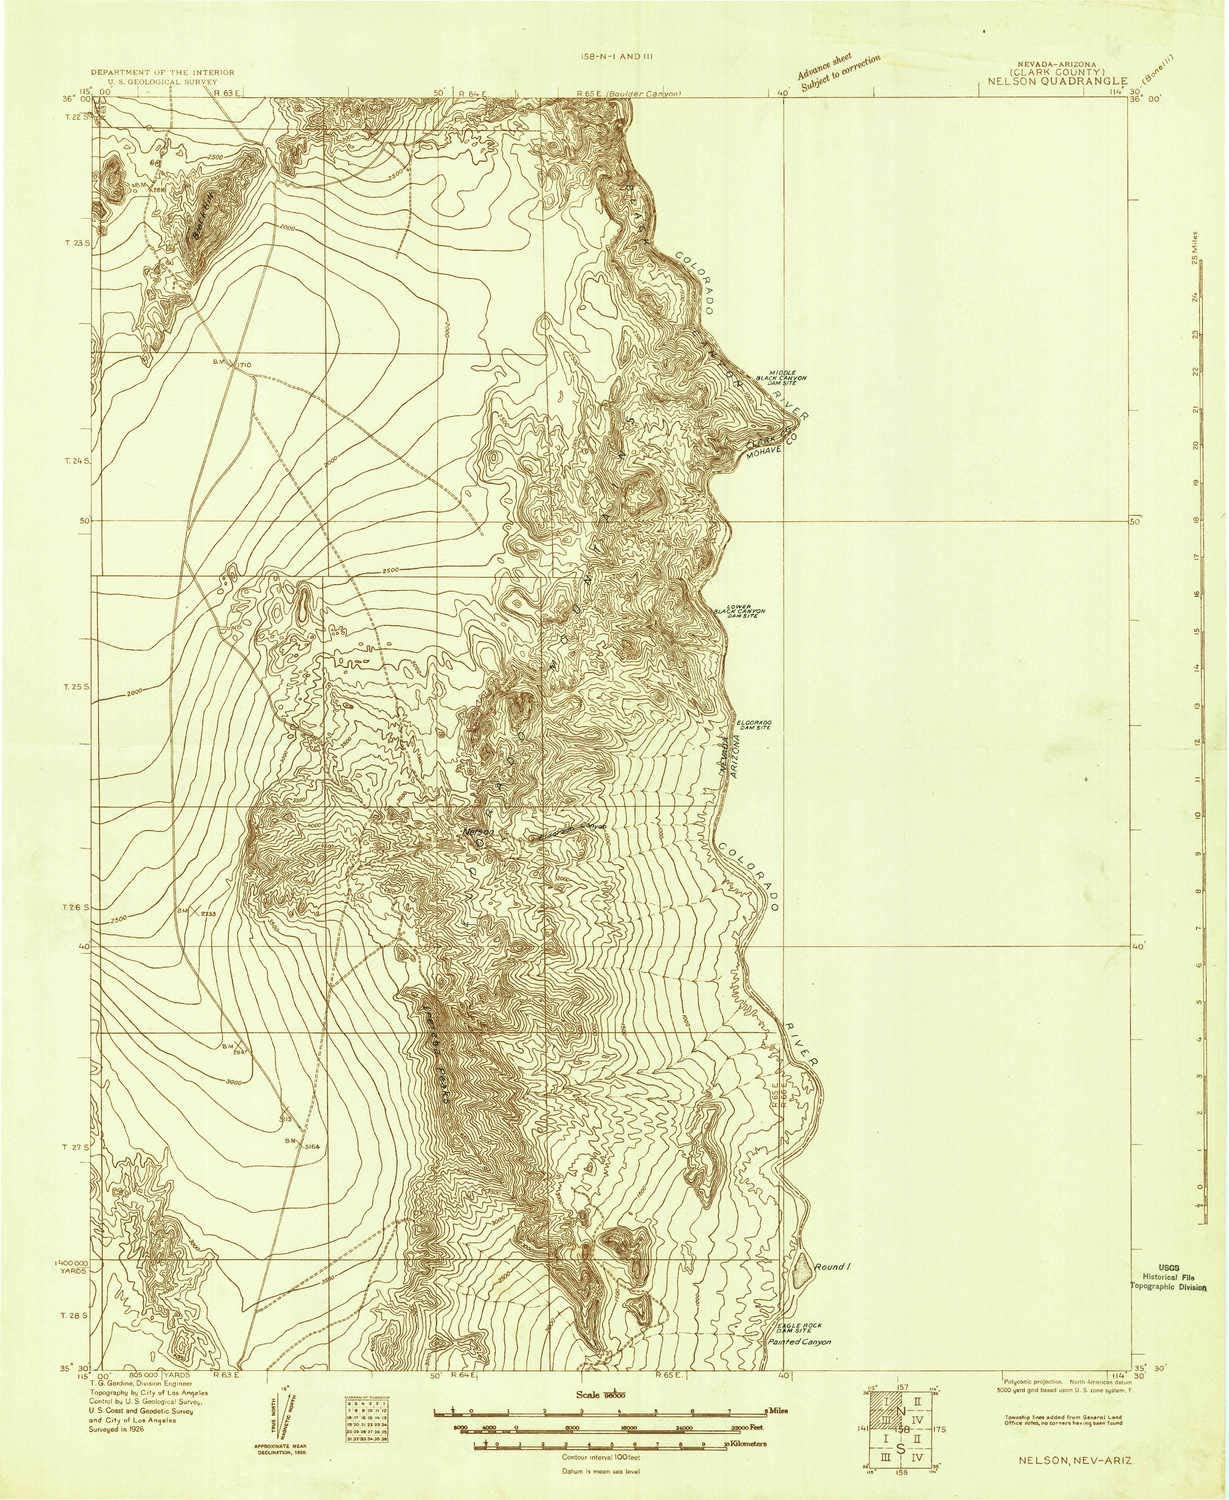 Nelson NV topo map 1:96000 Scale Spring new work 30 X Minute Historical Max 63% OFF 1